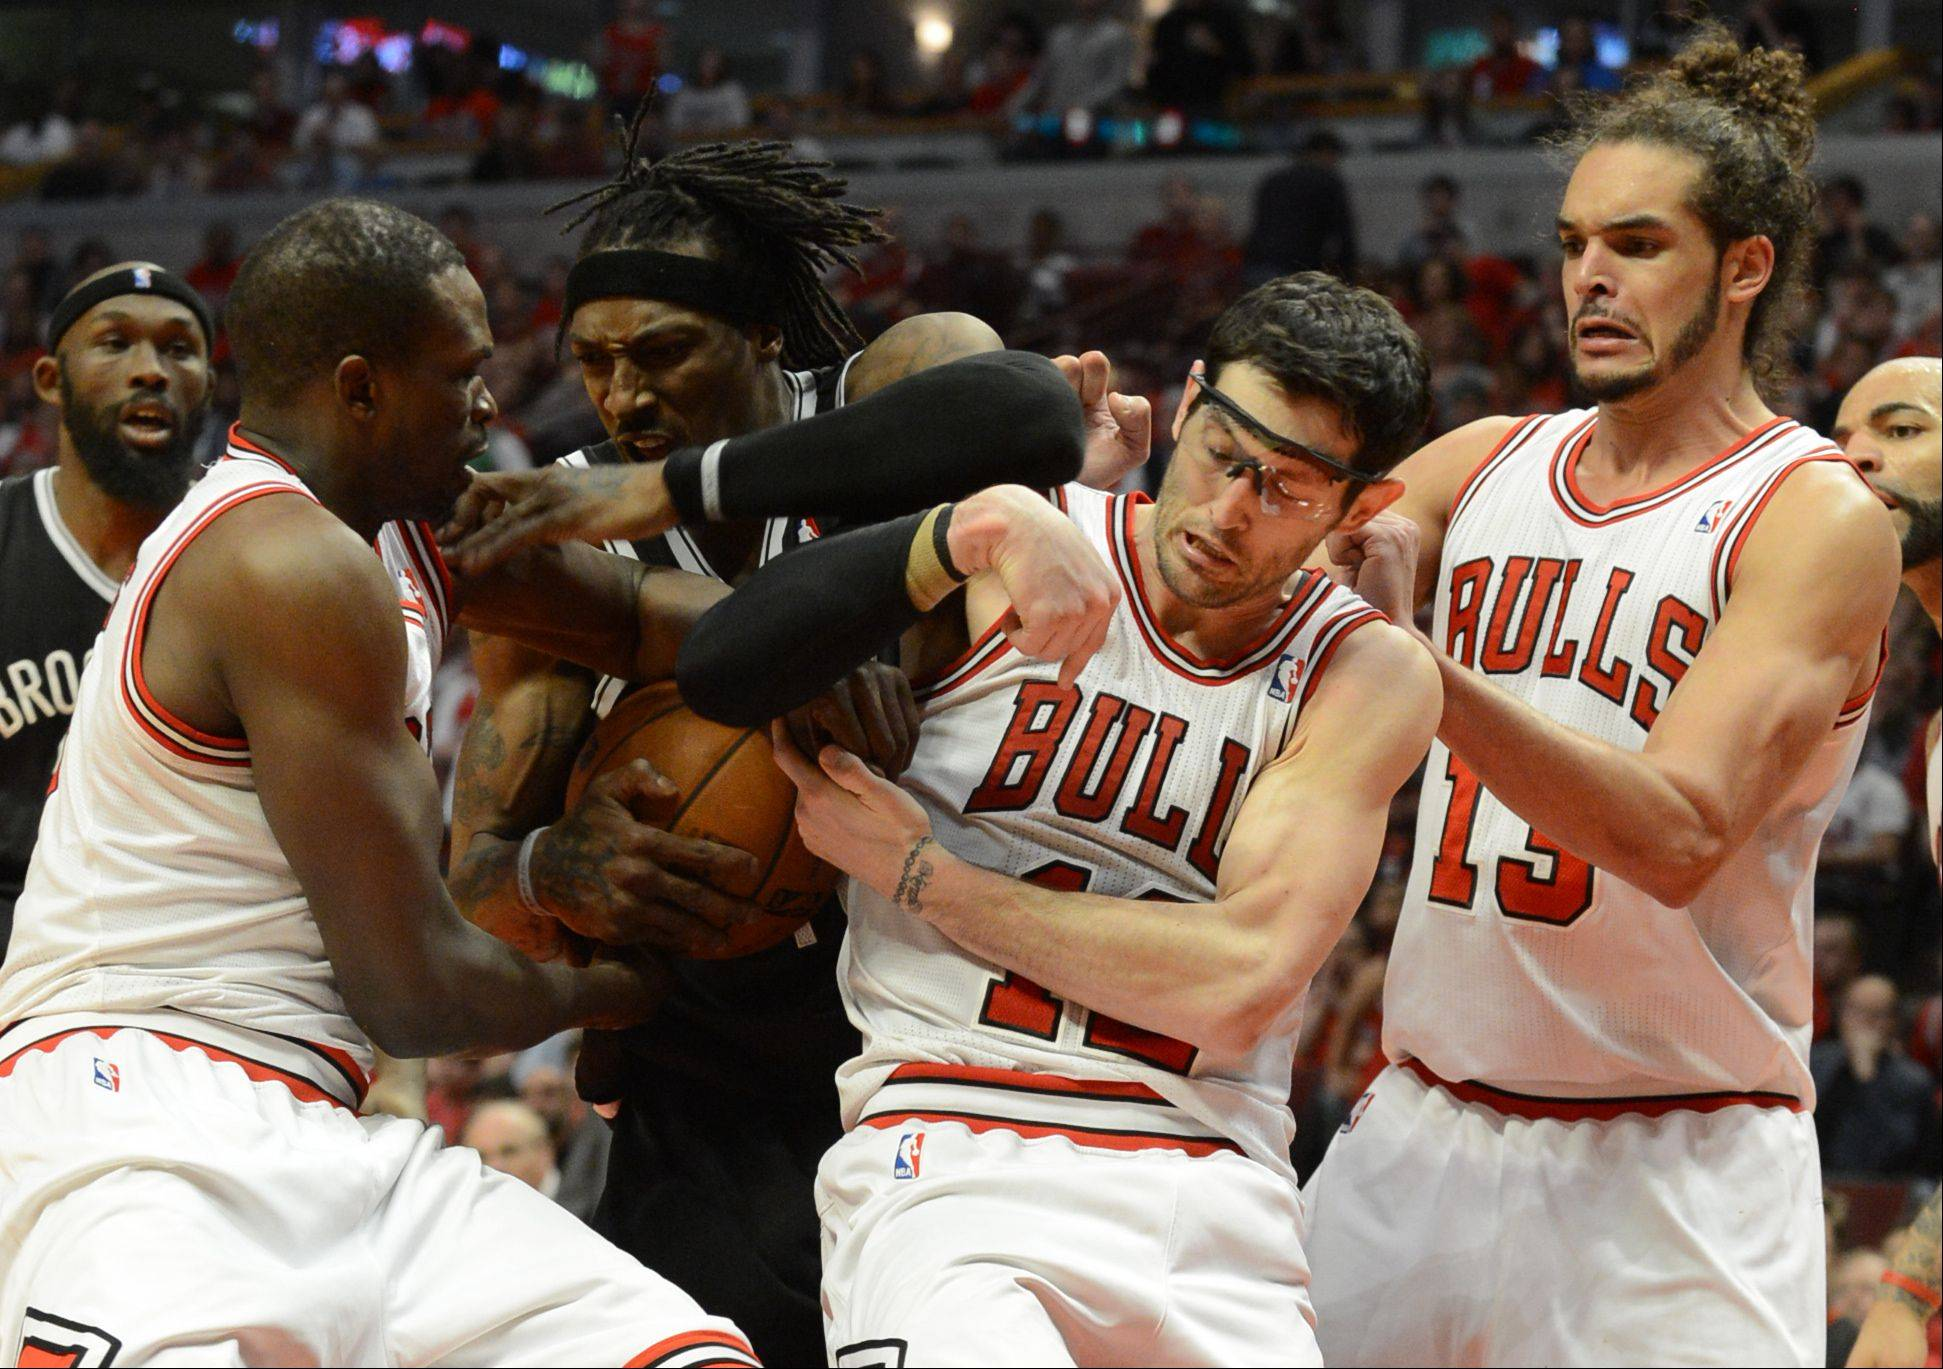 The Bulls Loul Deng, left, Kirk Hinrich and Joakim Noah fight for the ball with Brooklyn's Gerald Wallace Saturday during game 4 of the first round playoff game against the Brooklyn Nets at the United Center. The Bulls won in triple overtime 142-134